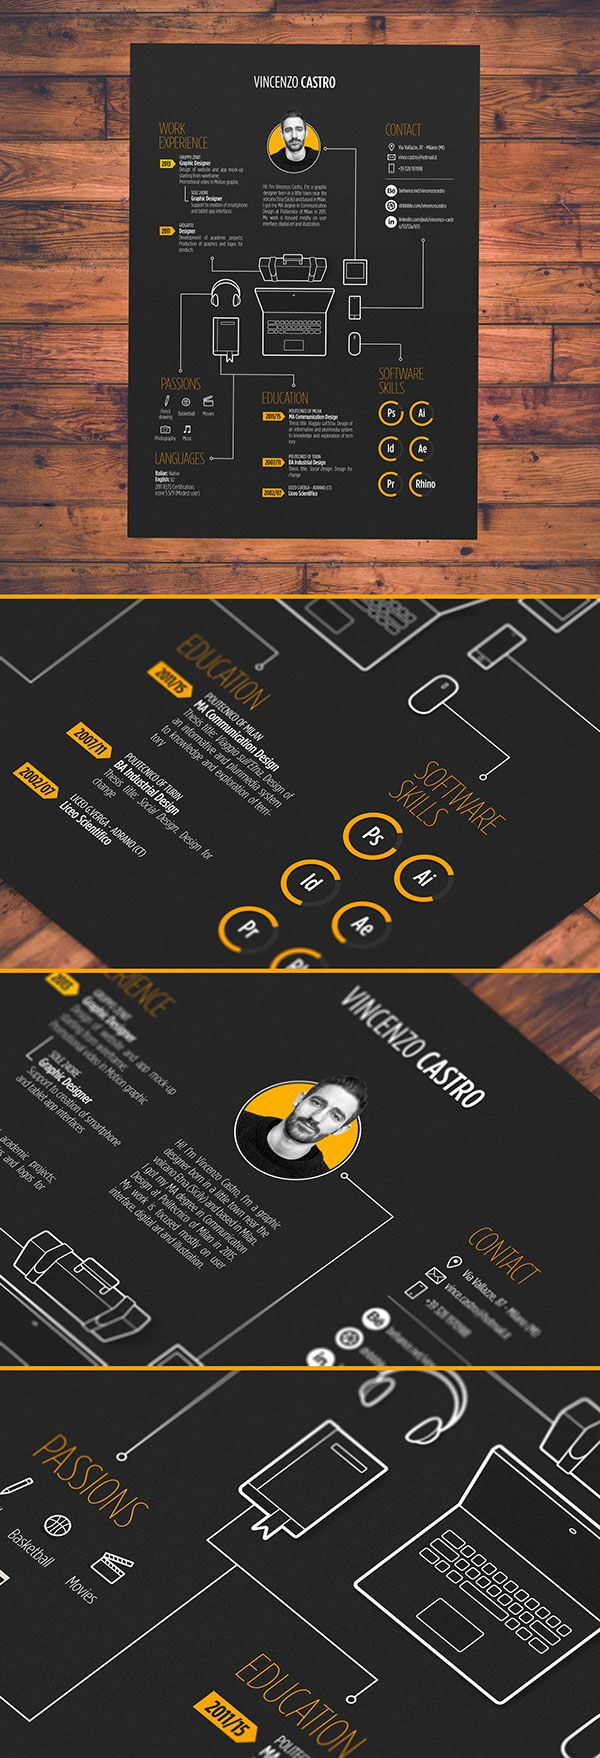 18 best cv images on Pinterest | Page layout, Resume design and Career